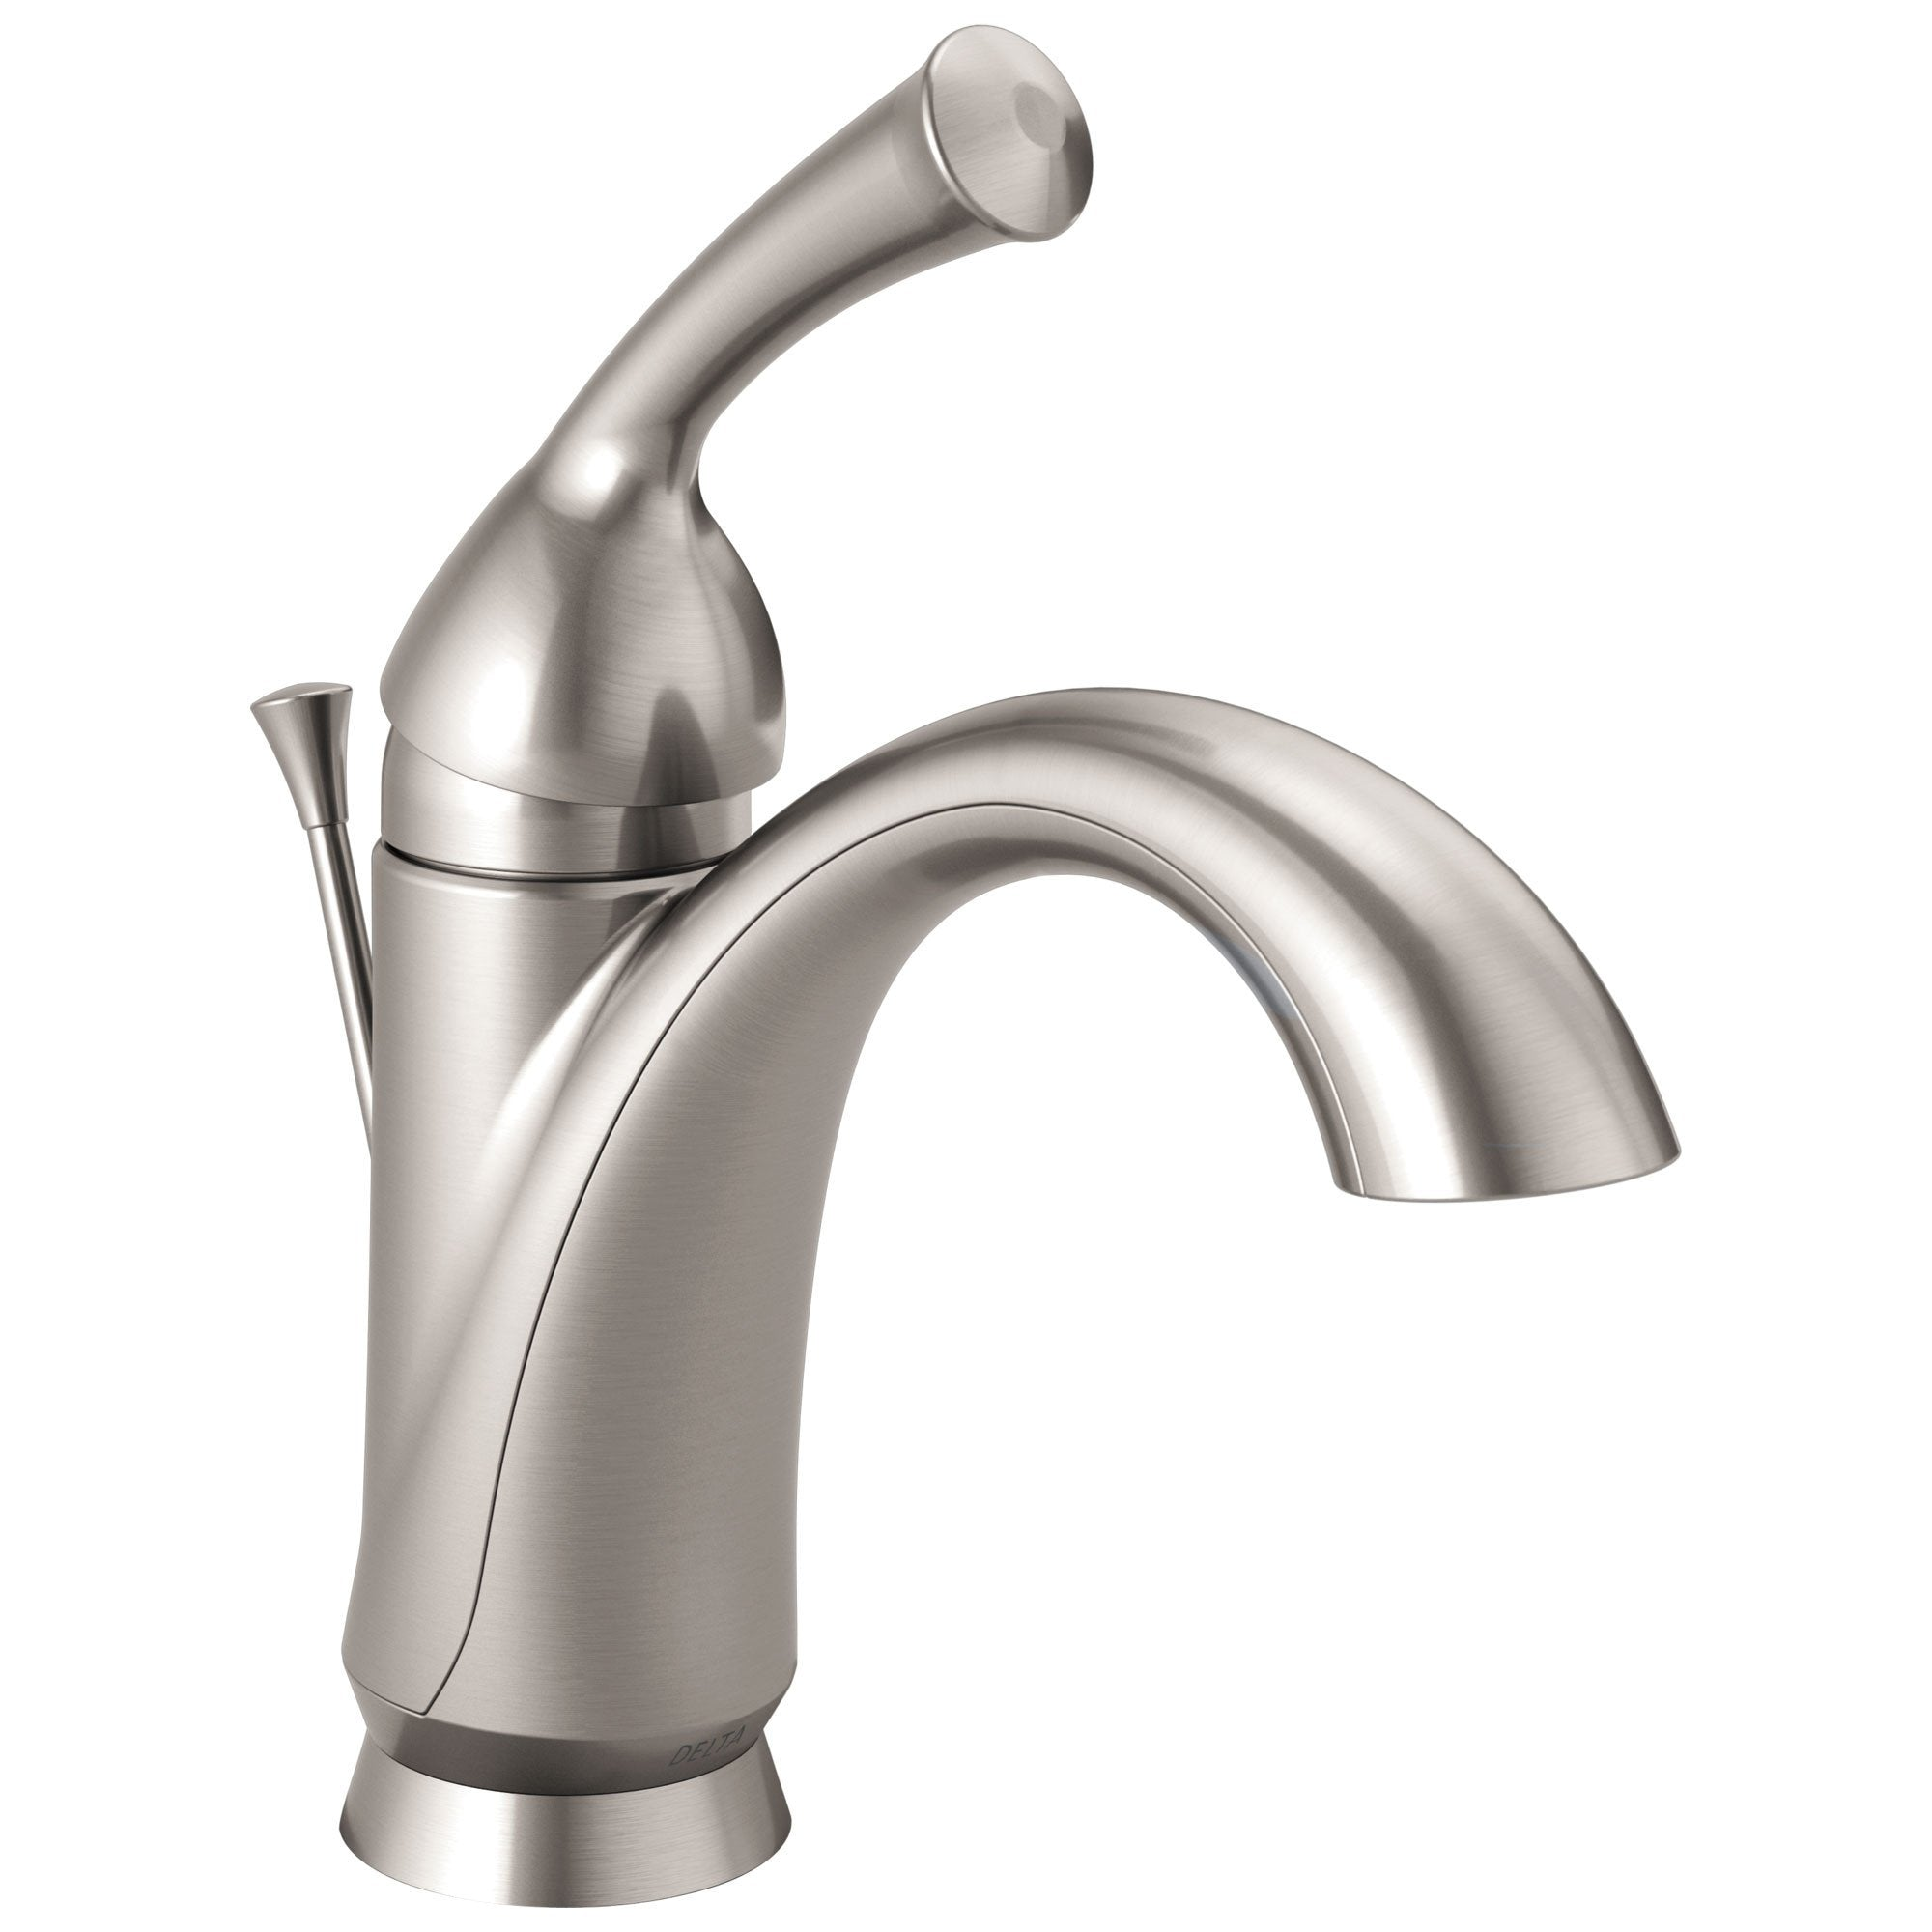 Delta Haywood Collection Stainless Steel Finish Single Handle One Hole Centerset Lavatory Faucet Includes Deck Plate for 3-Hole Installation 722474